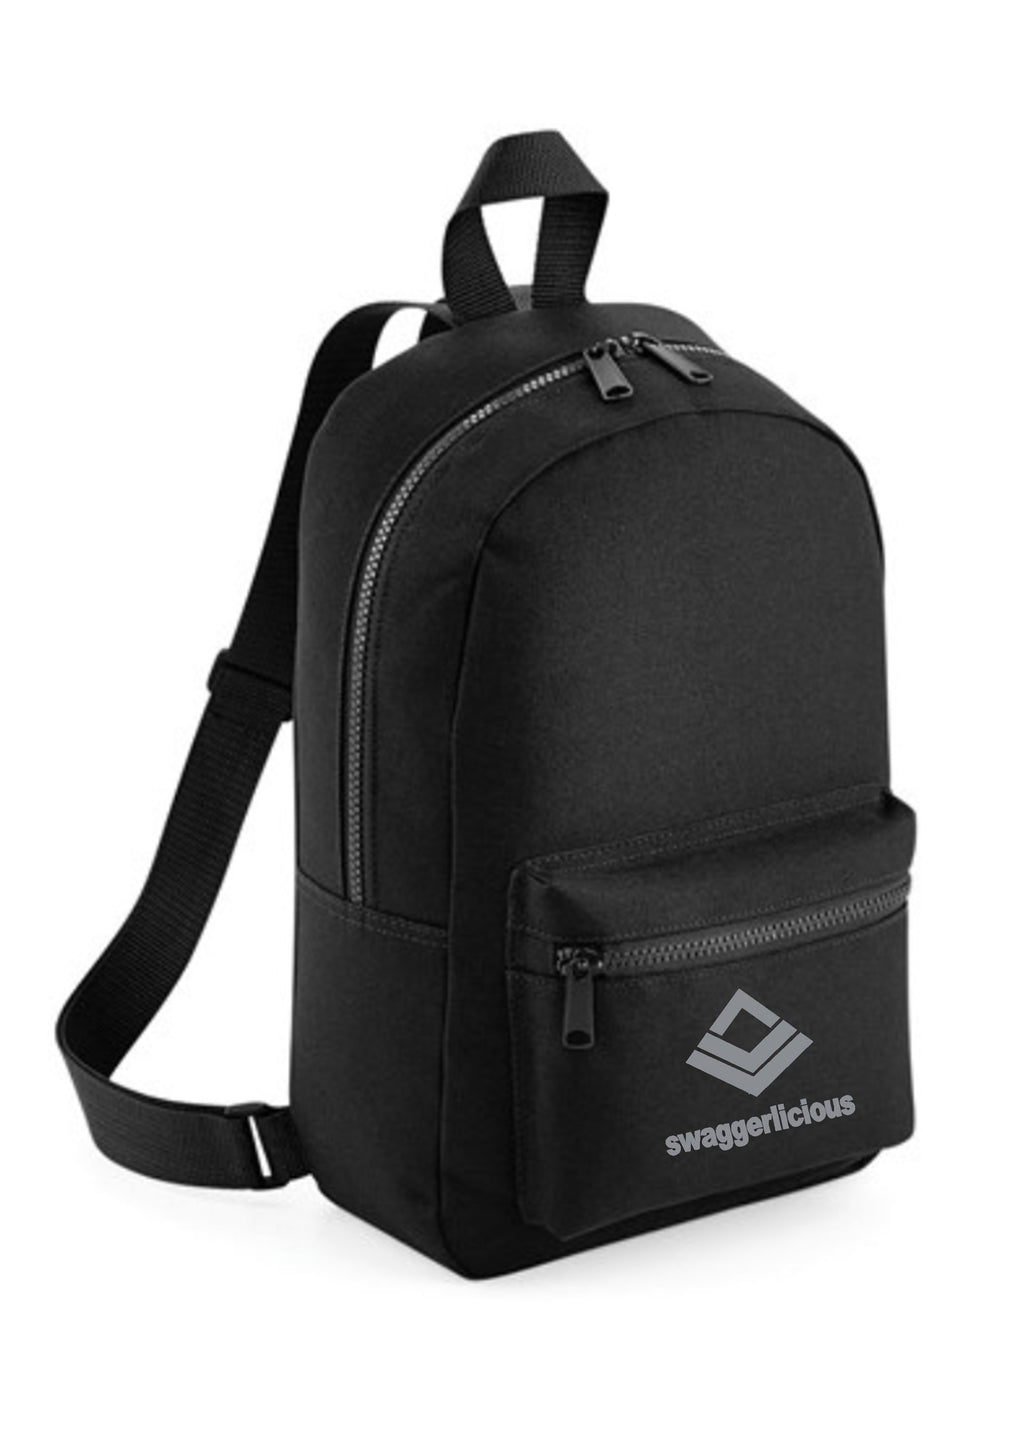 Swaggerlicious Classic Black Mini Backpack with Silver Logo - swaggerlicious-clothing.com